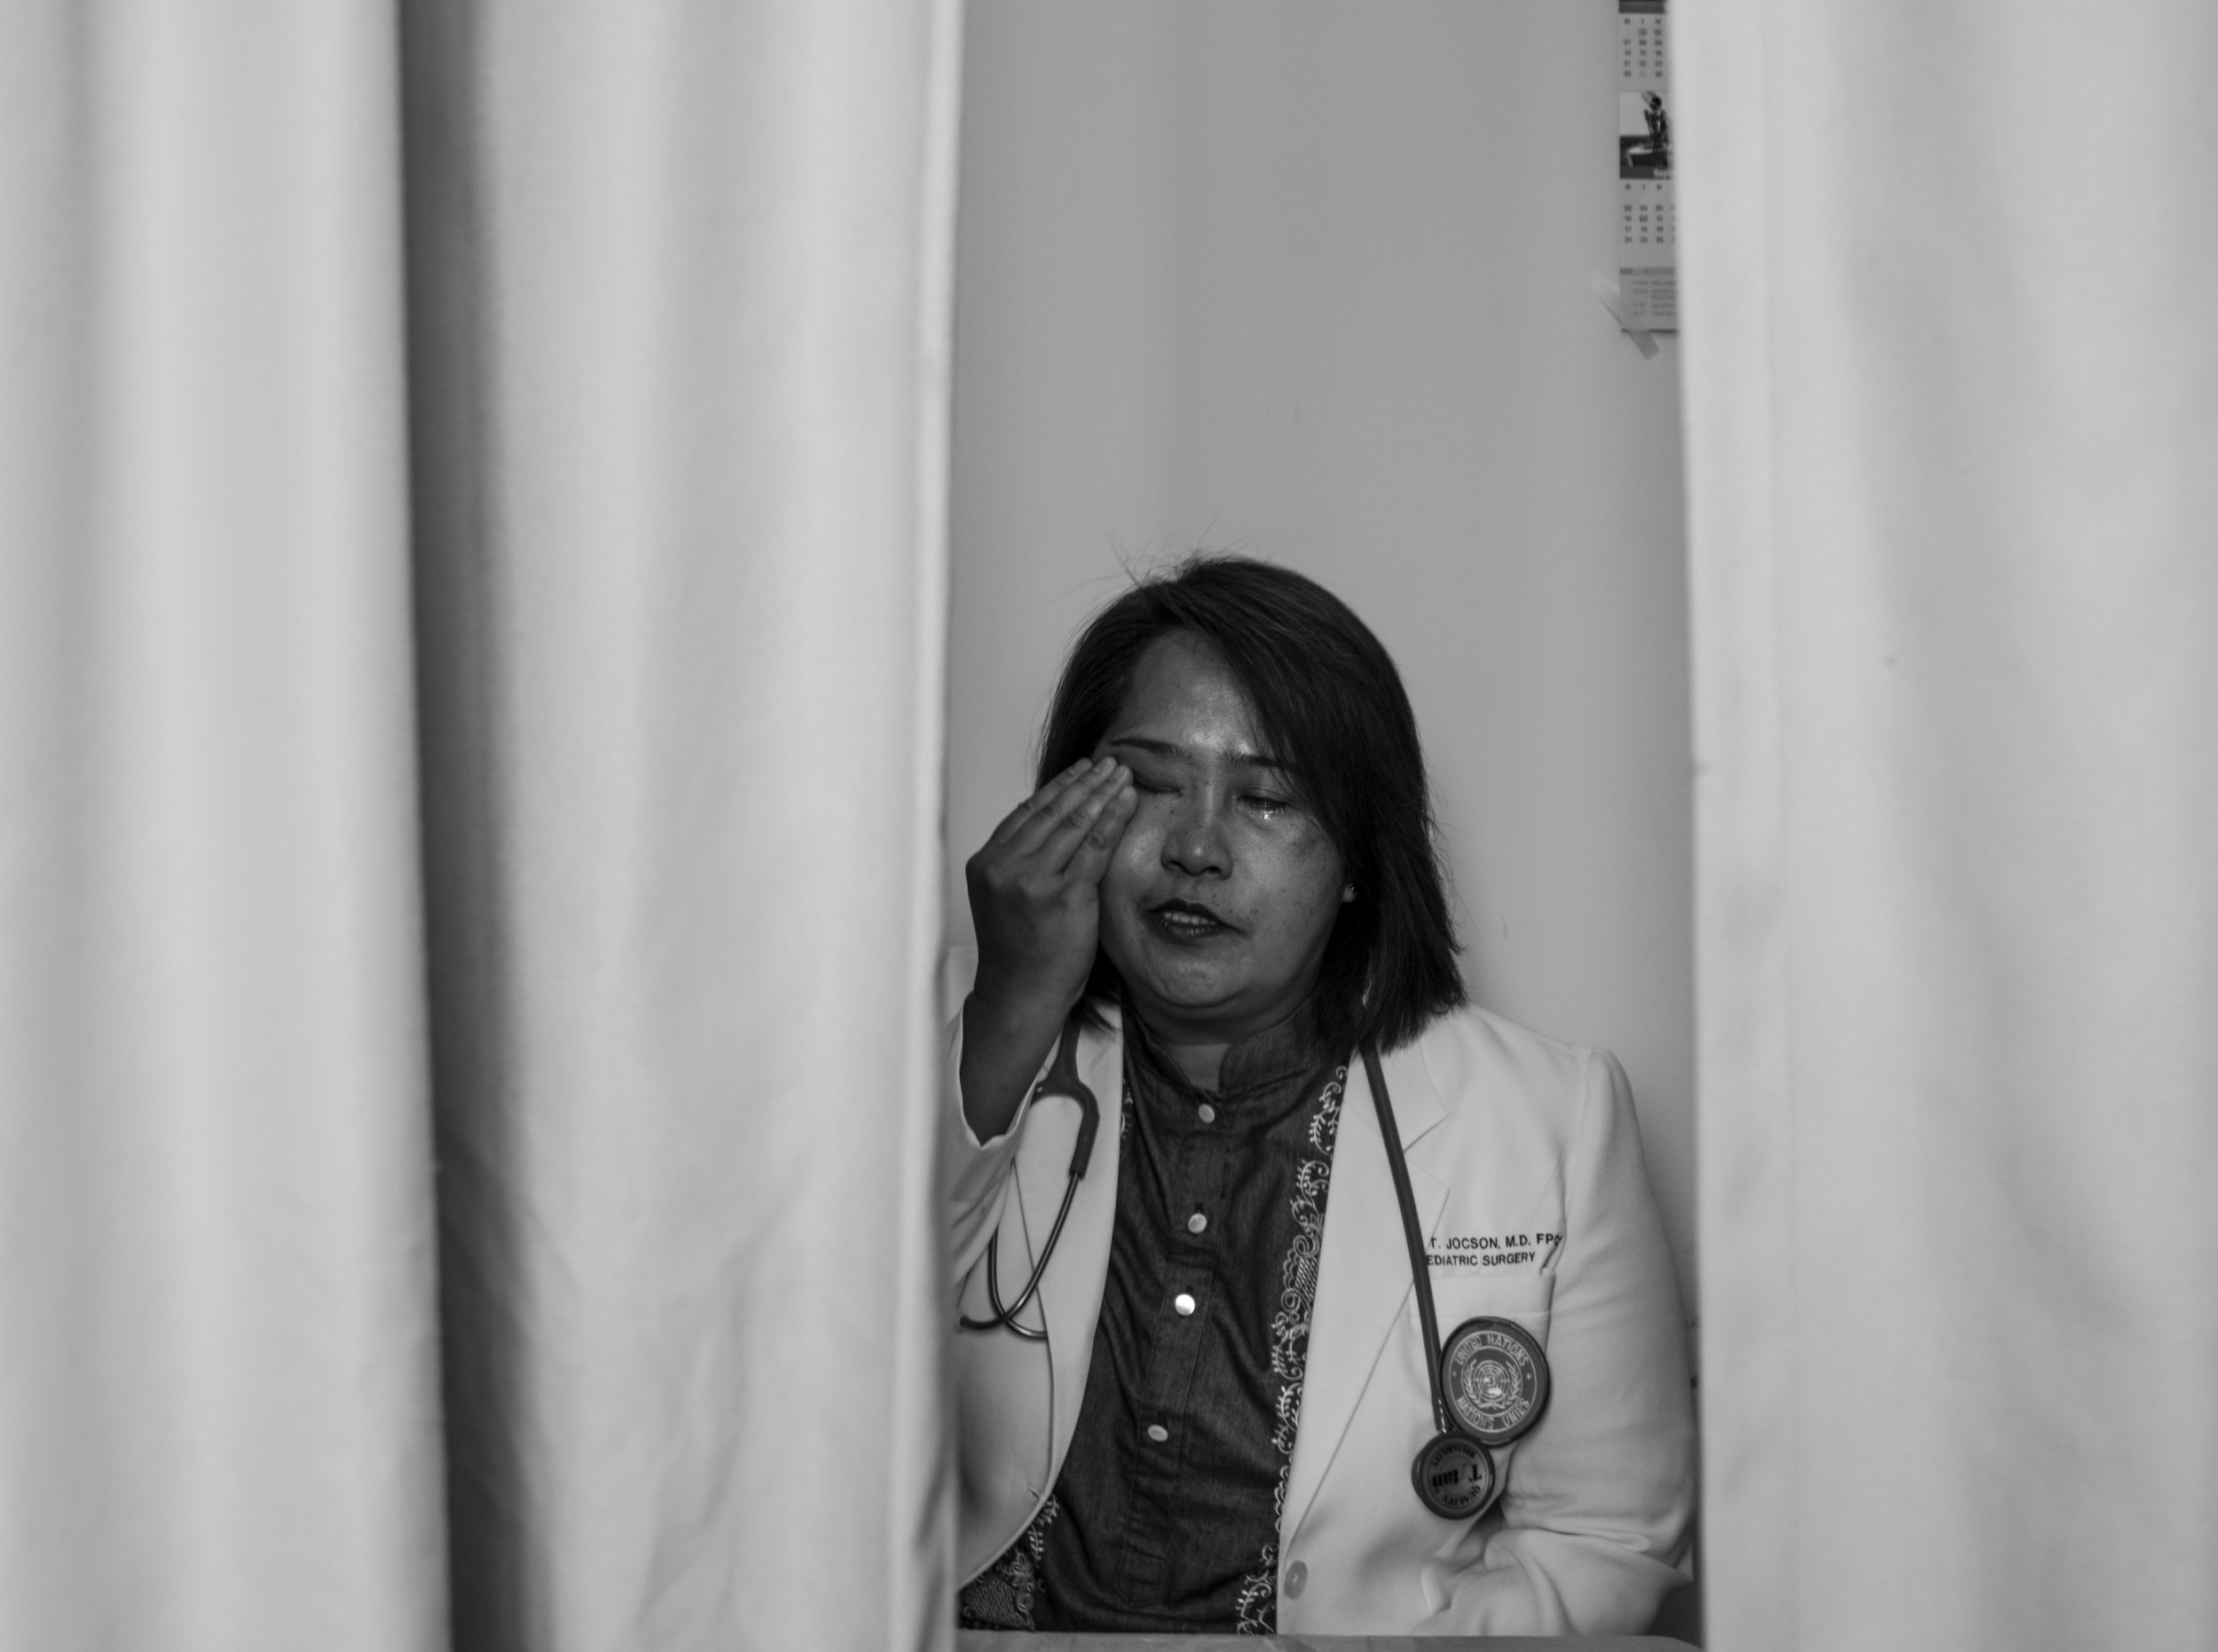 May 3, 2018, UNIFIL- Elma (53), a Filipino pediatric surgeon cries as she tells the story of a 9 year old boy dying during surgery.